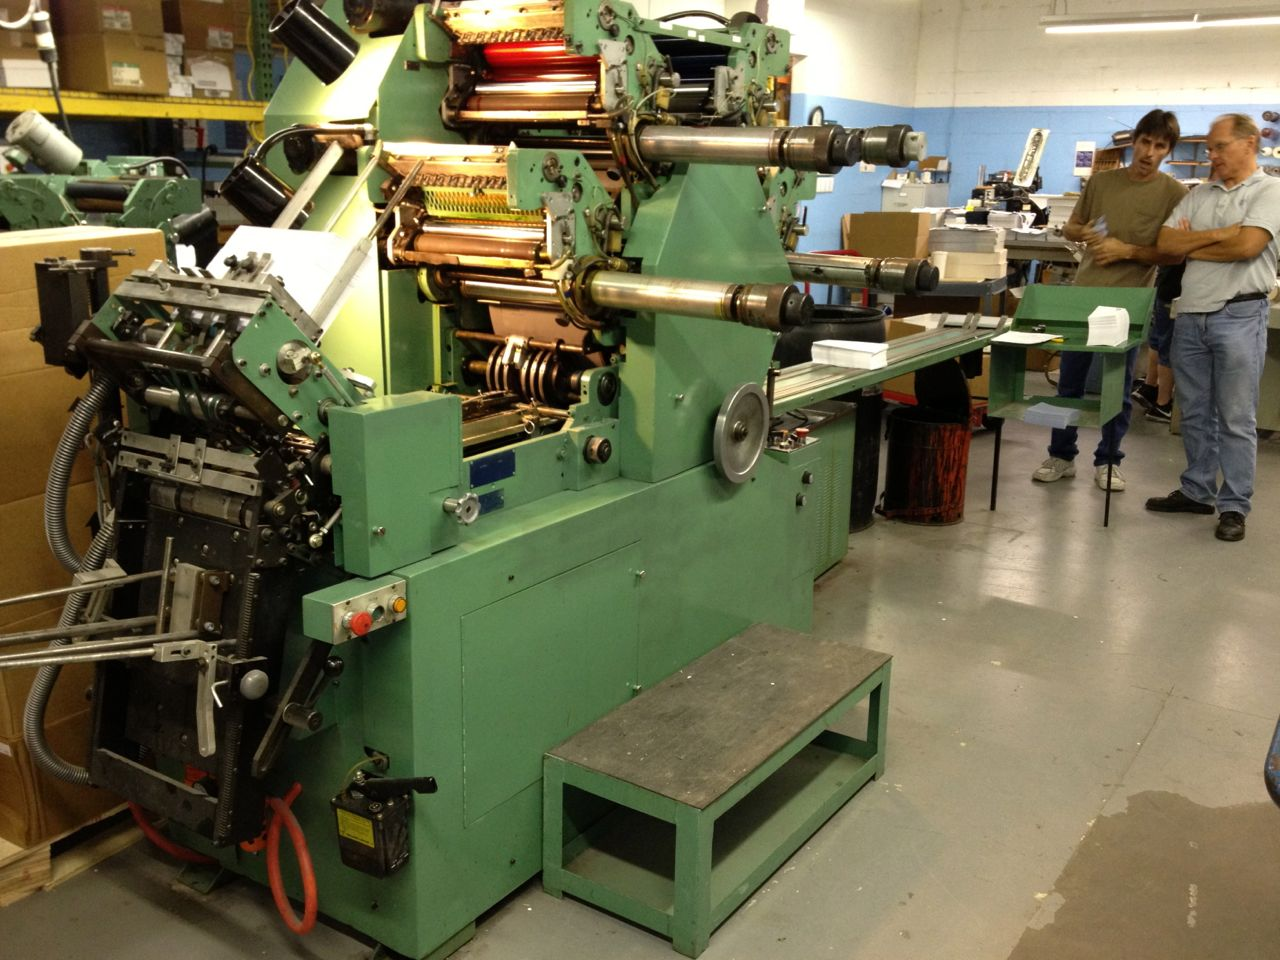 4 color Halm jet press model JP-FWOD sn 3337 max size 9×12″ reconditioned in 2010 sold AS IS excellent condition